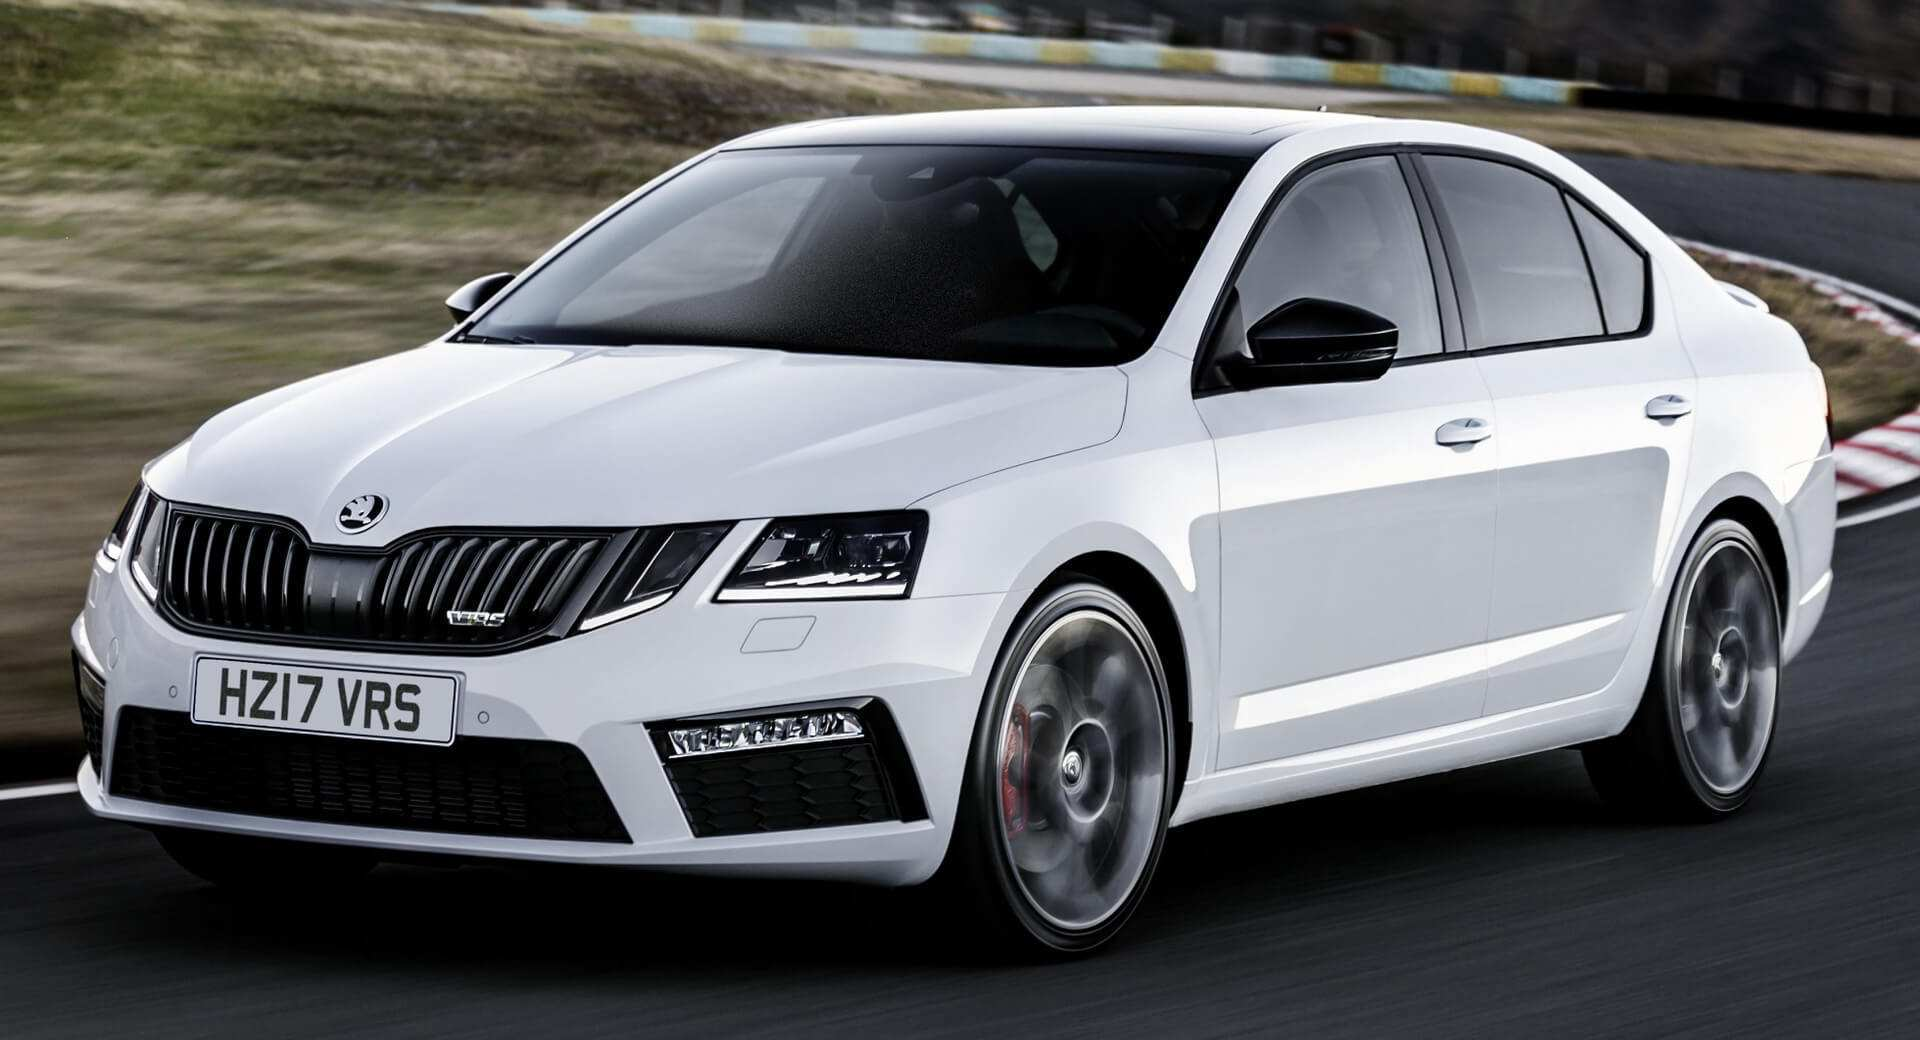 59 Great 2020 Skoda Octavia 2020 Redesign and Concept for 2020 Skoda Octavia 2020